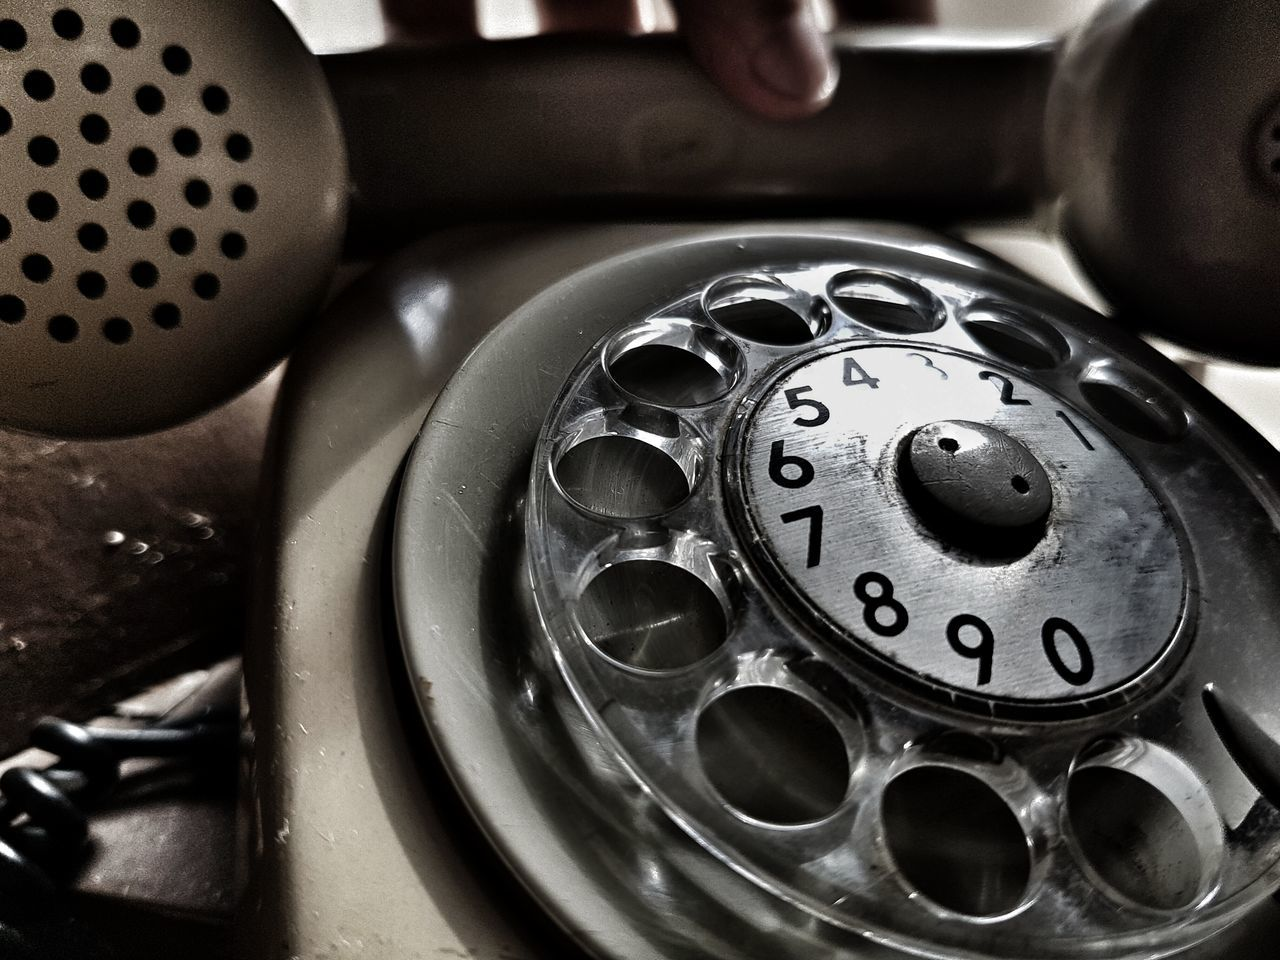 Telephone Technology Retro Styled Close-up Old-fashioned Rotary Phone Indoors  No People Gear Telephone Receiver Day Hands Retro Vintage Vintage Style Bestsellers Getty Images Premium Collection Sunlight Reflection BYOPaper! EyeEmNewHere Live For The Story